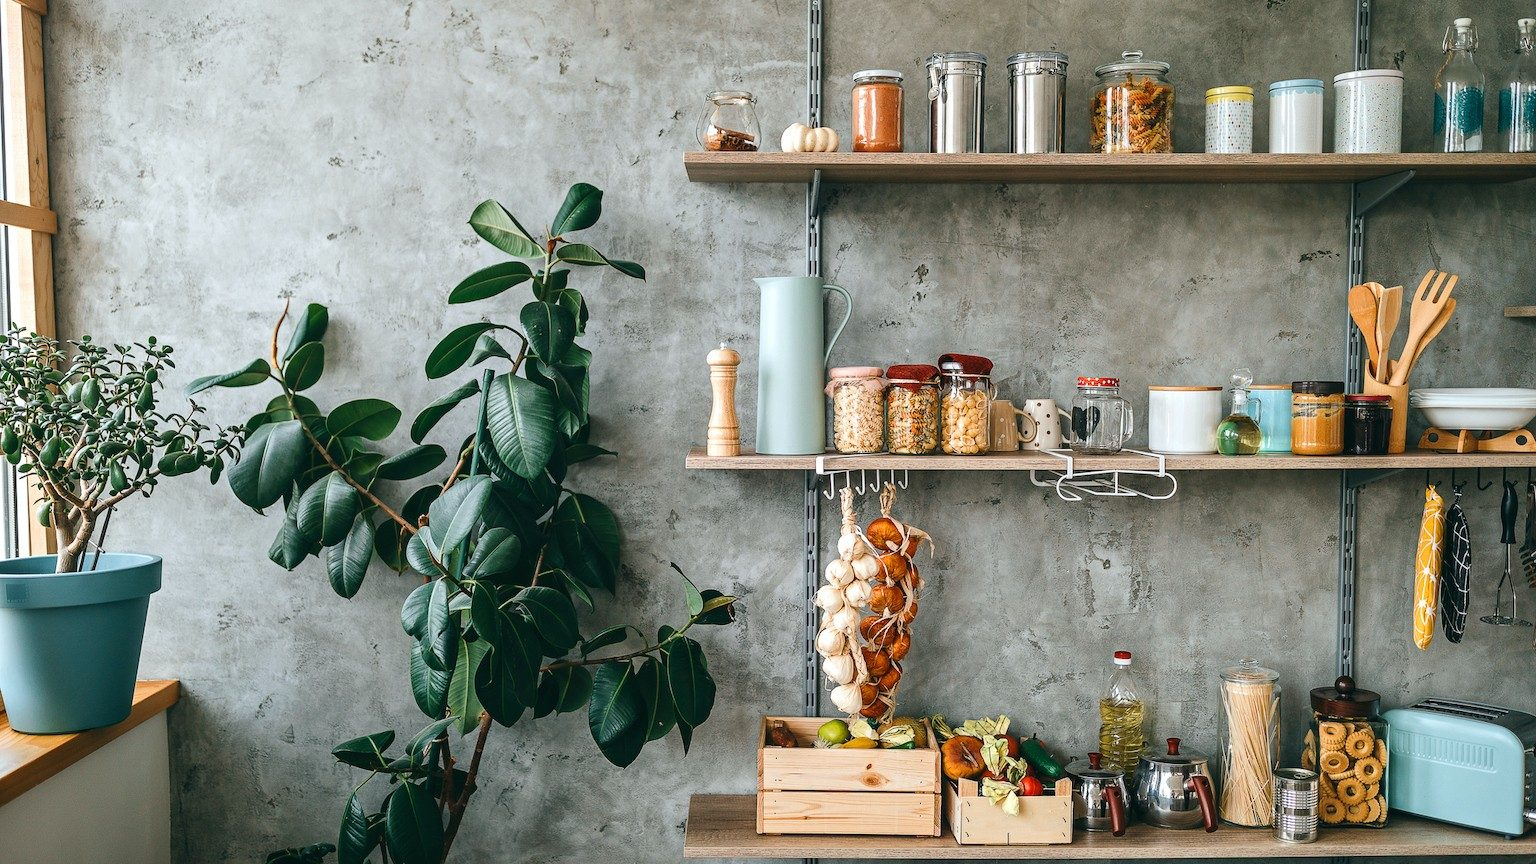 Uncooked groceries in glass jars arranged on wooden shelves of kitchen